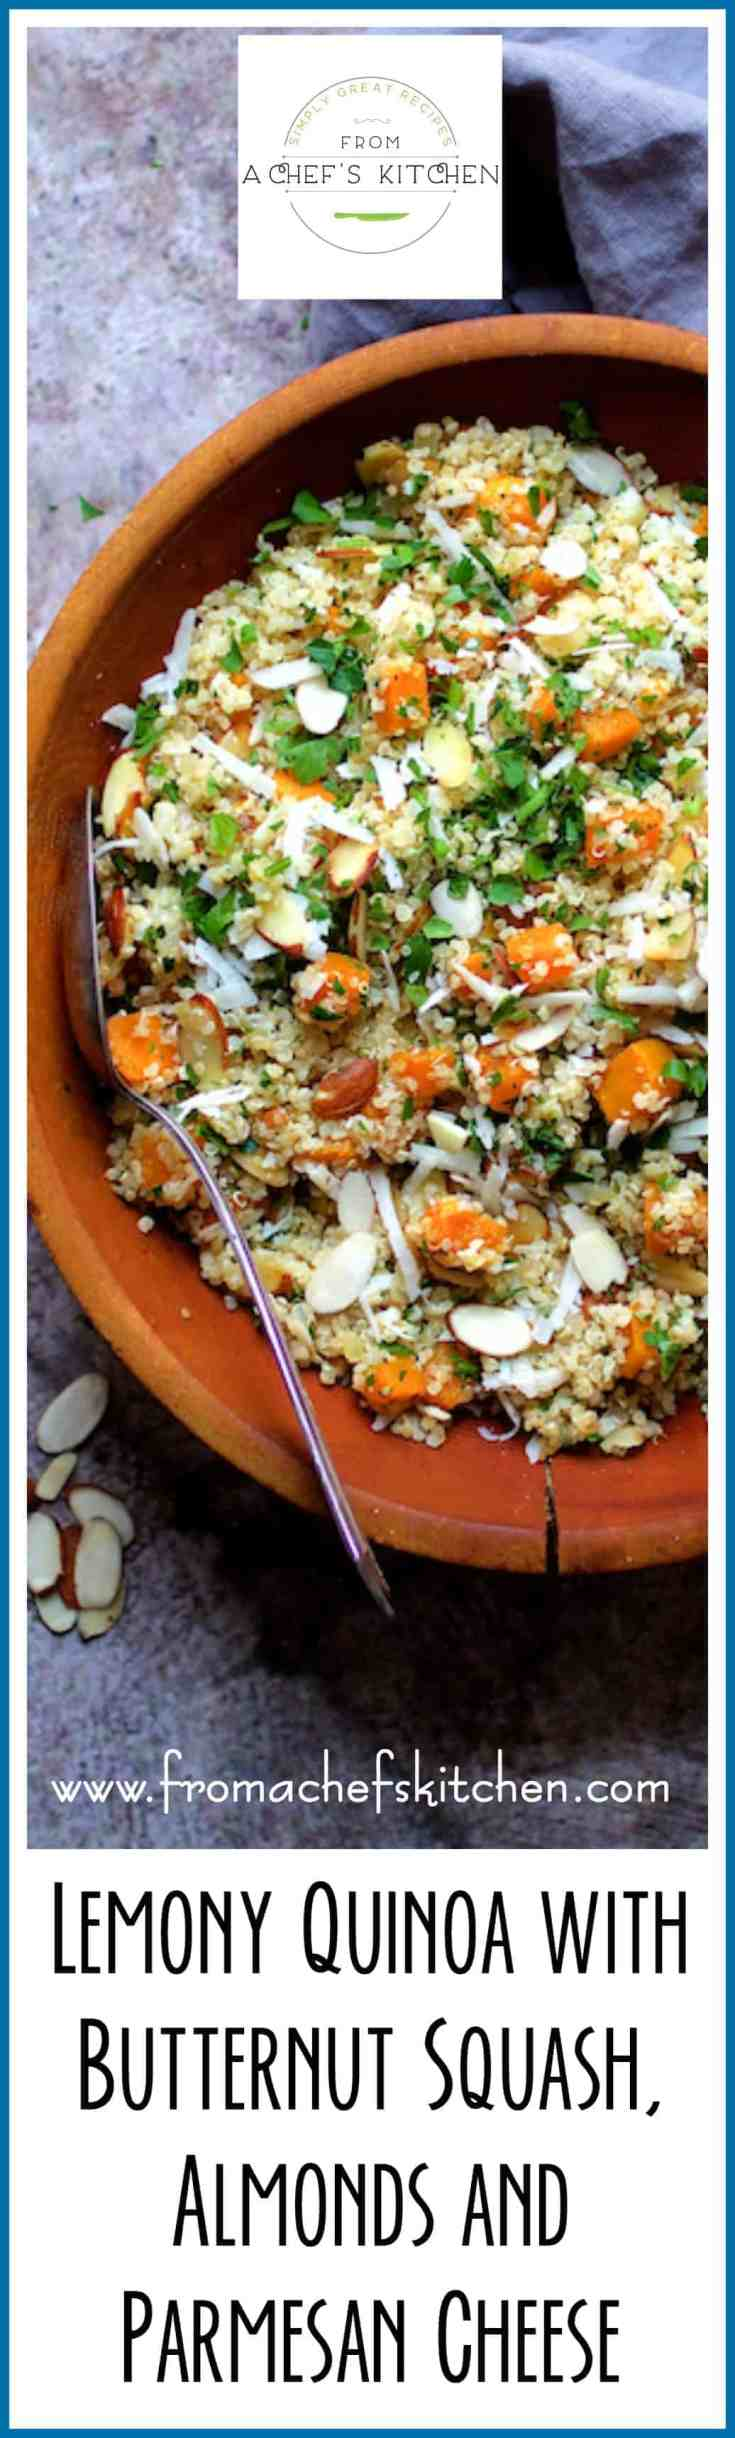 Lemony Quinoa with Butternut Squash, Almonds and Parmesan Cheese rocks with flavor and makes the perfect autumn side dish or vegetarian main dish.  #quinoa #butternutsquash #vegetarian #vegetarianrecipe